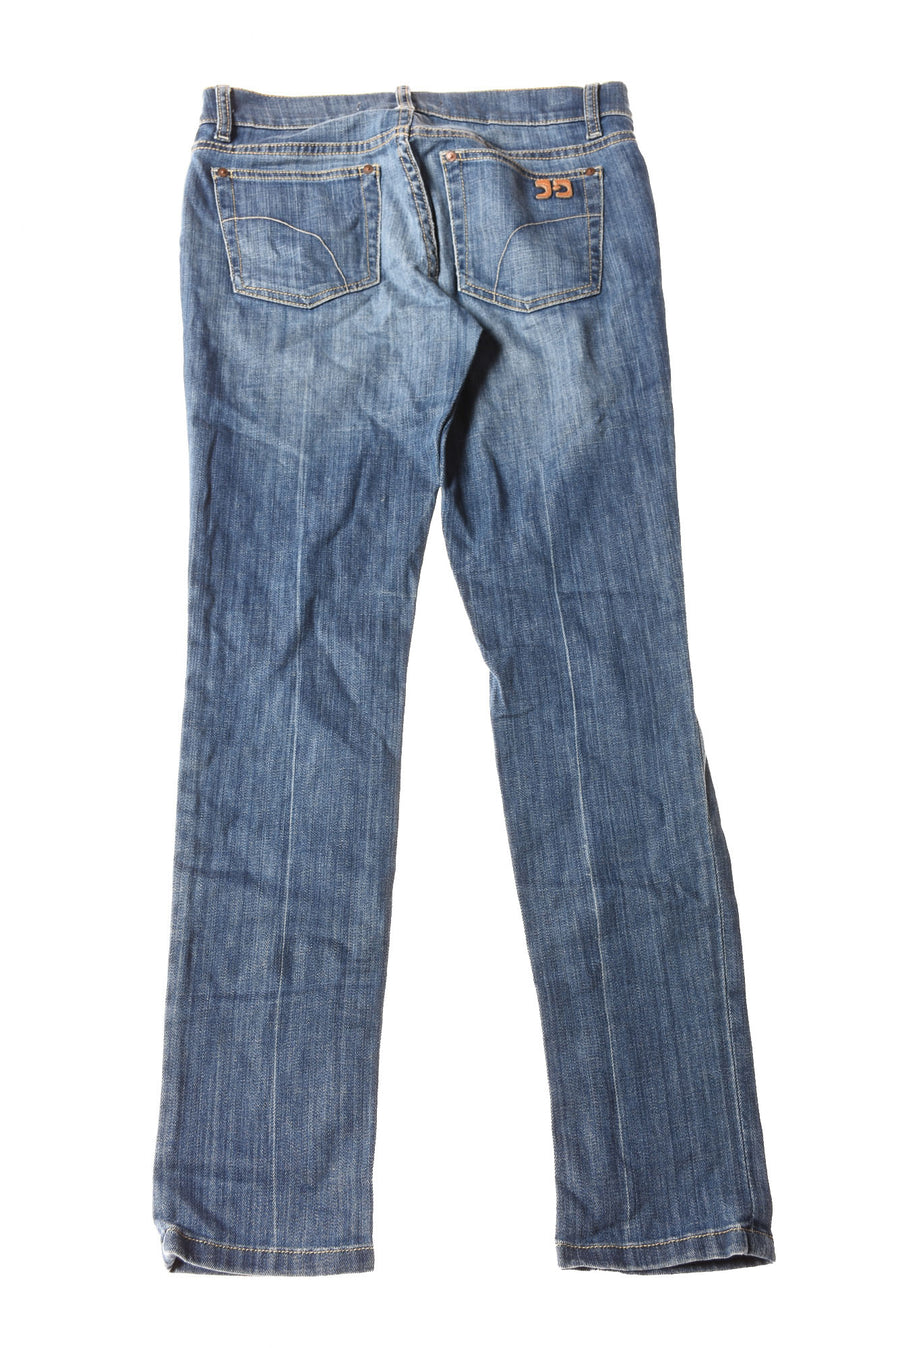 USED Joe's Women's Jeans 26 Blue